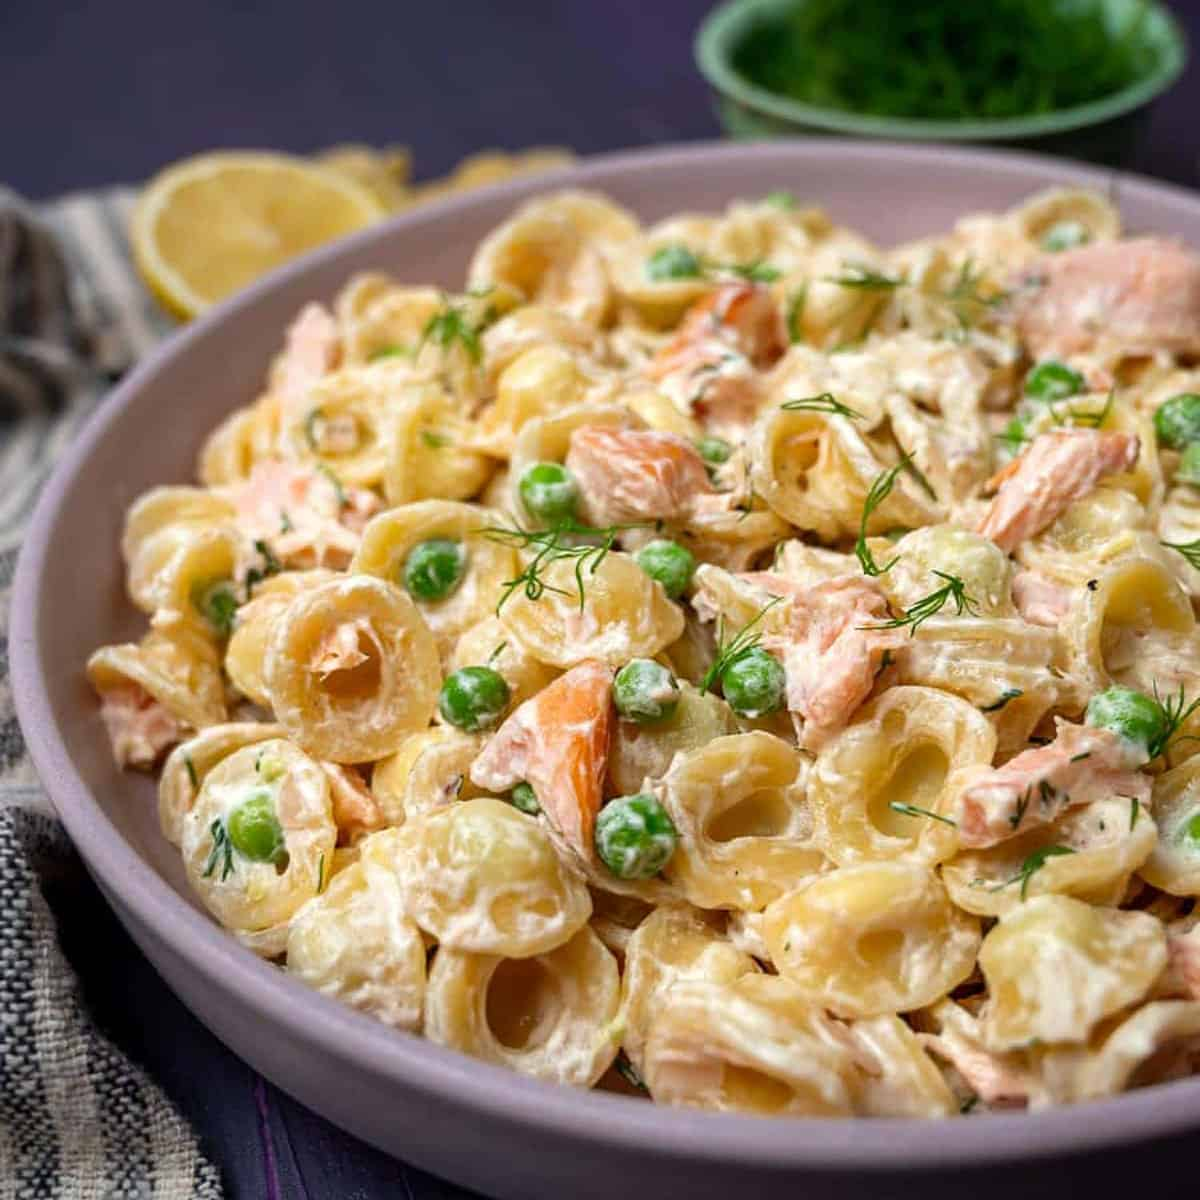 A bowl of creamy pasta with peas and smoked salmon.